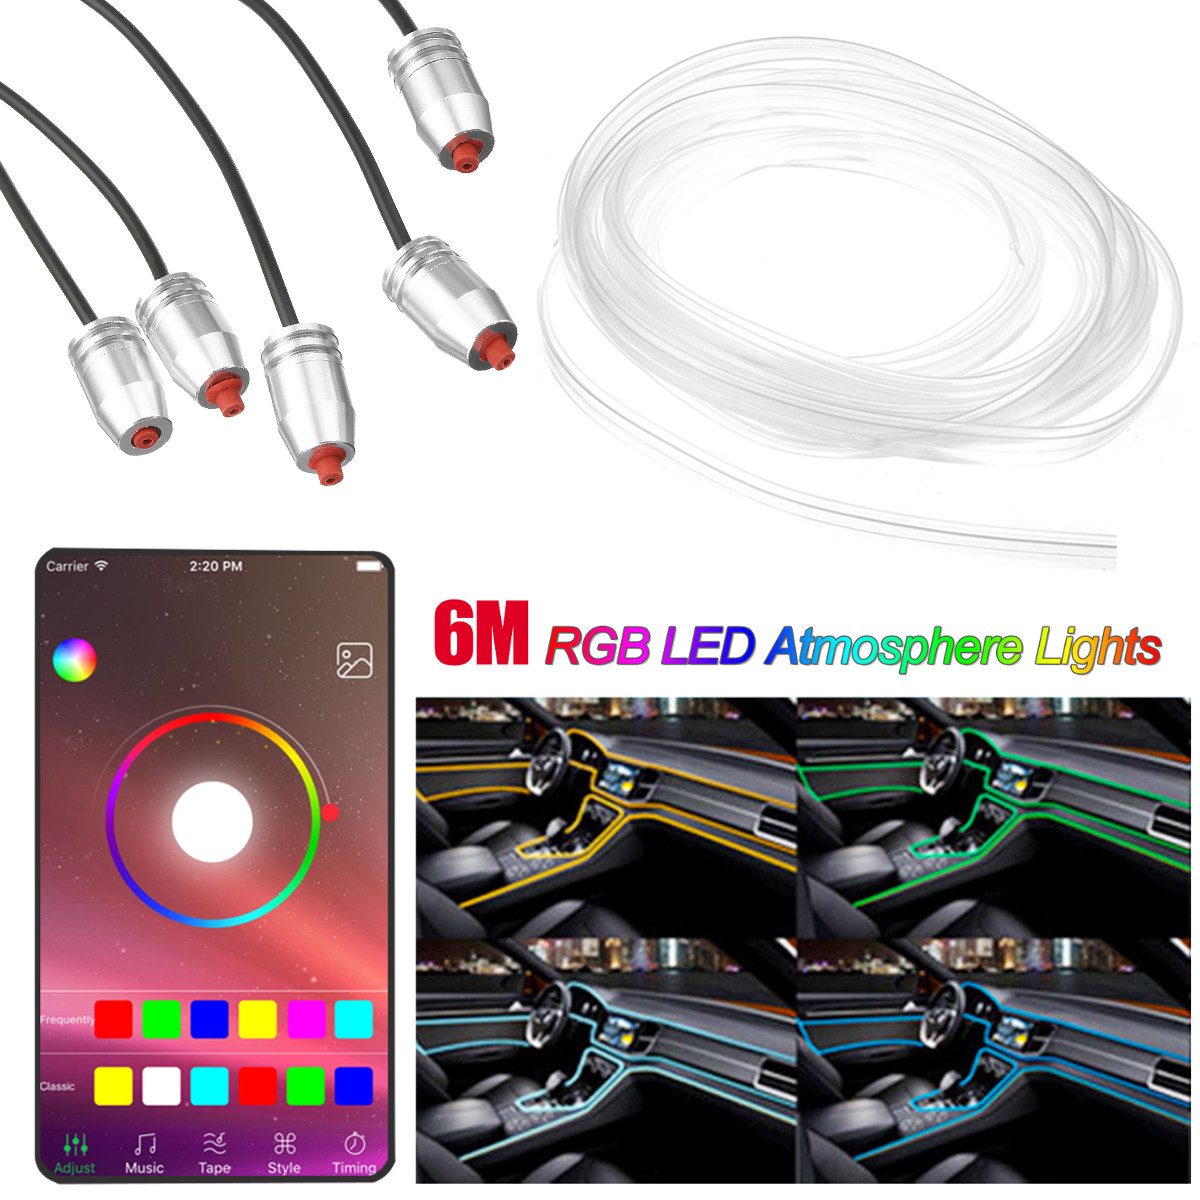 6m 5 in 1 LED Car Interior Decoration Lights Floor Atmosphere Light Strip Phone App Control Colorful